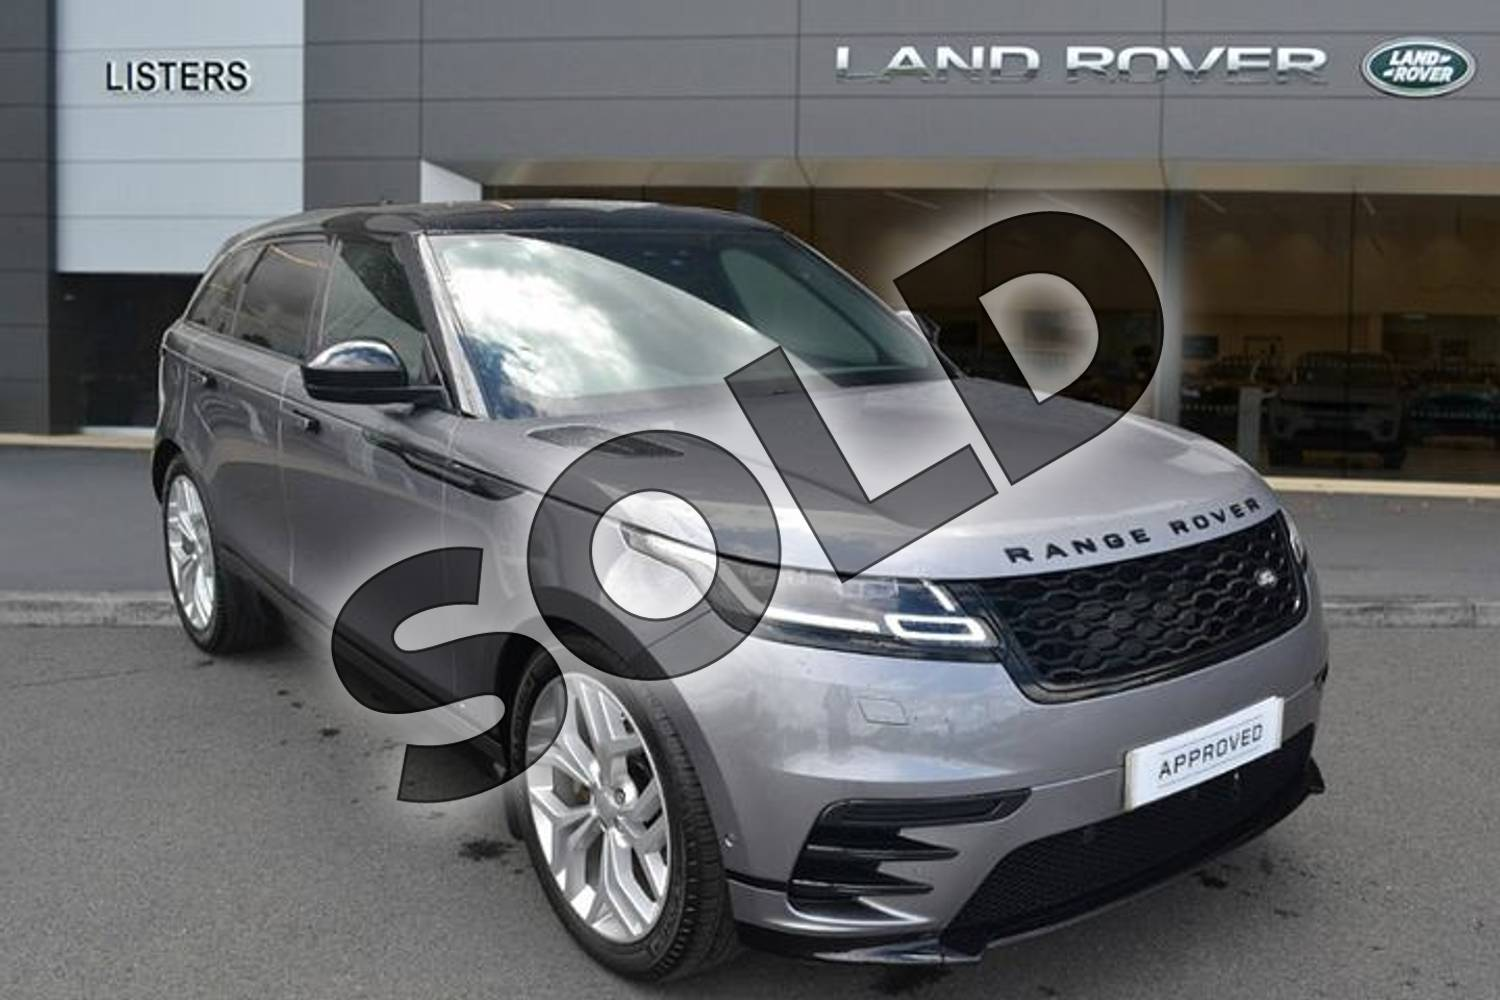 2019 Range Rover Velar Diesel Estate 2.0 D240 R-Dynamic SE 5dr Auto in Eiger Grey at Listers Land Rover Hereford